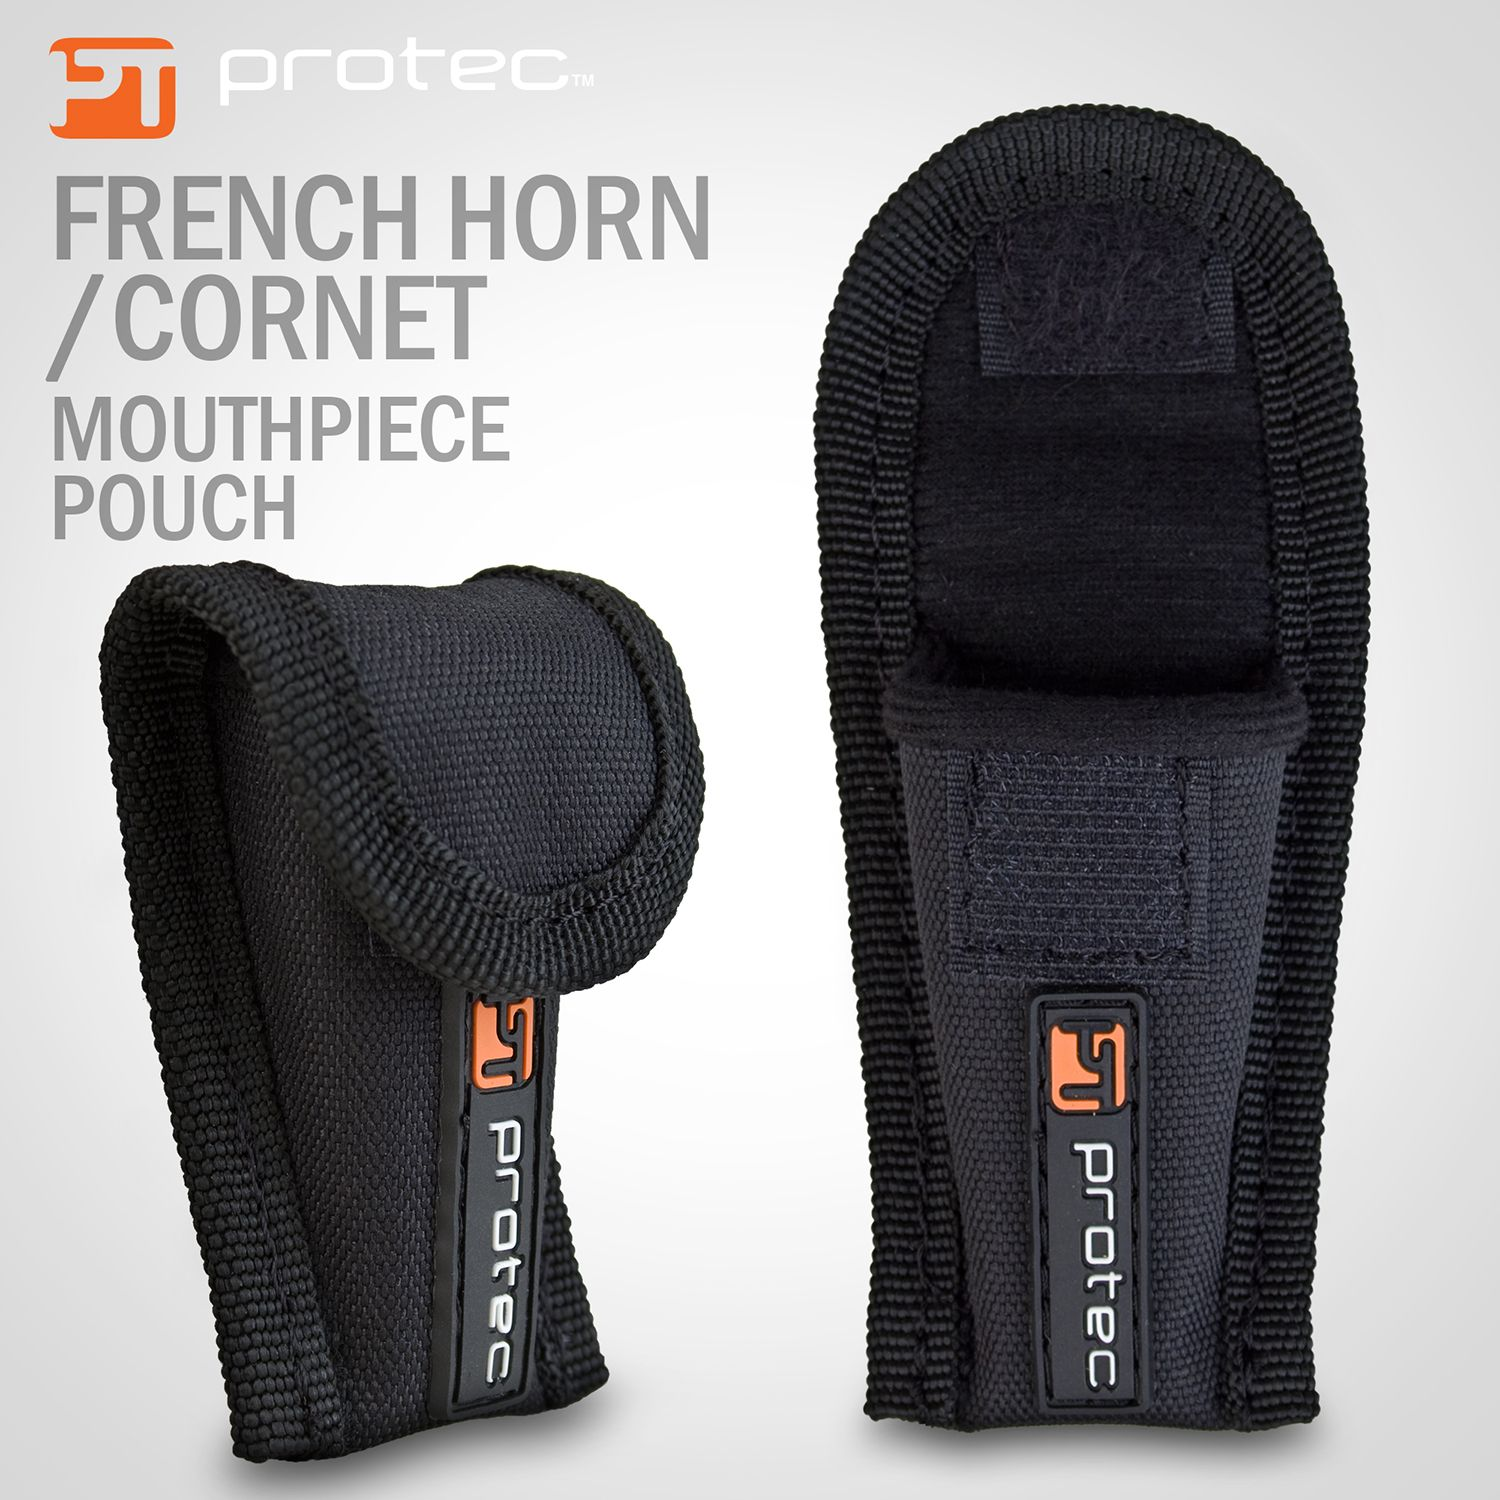 Nylon Padded Mouthpiece Pouch for French Horn/Cornet